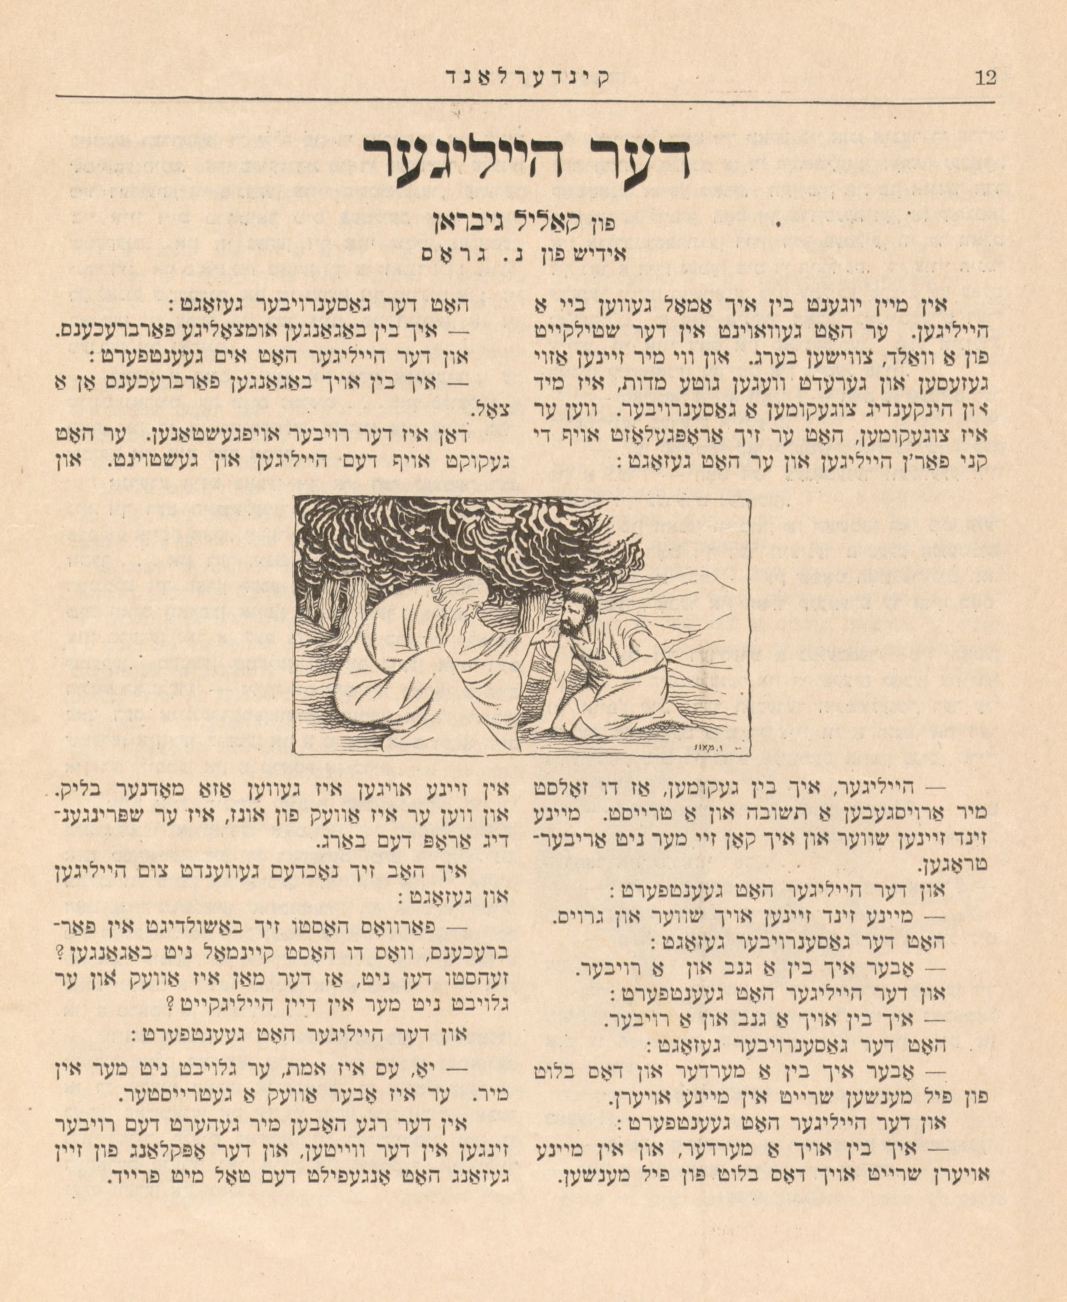 The Holy Man by Kahlil Gibran, translated into Yiddish by Naftali Gross, Kinderland, Vol. 1, No. 3, March, 1921, p. 12.